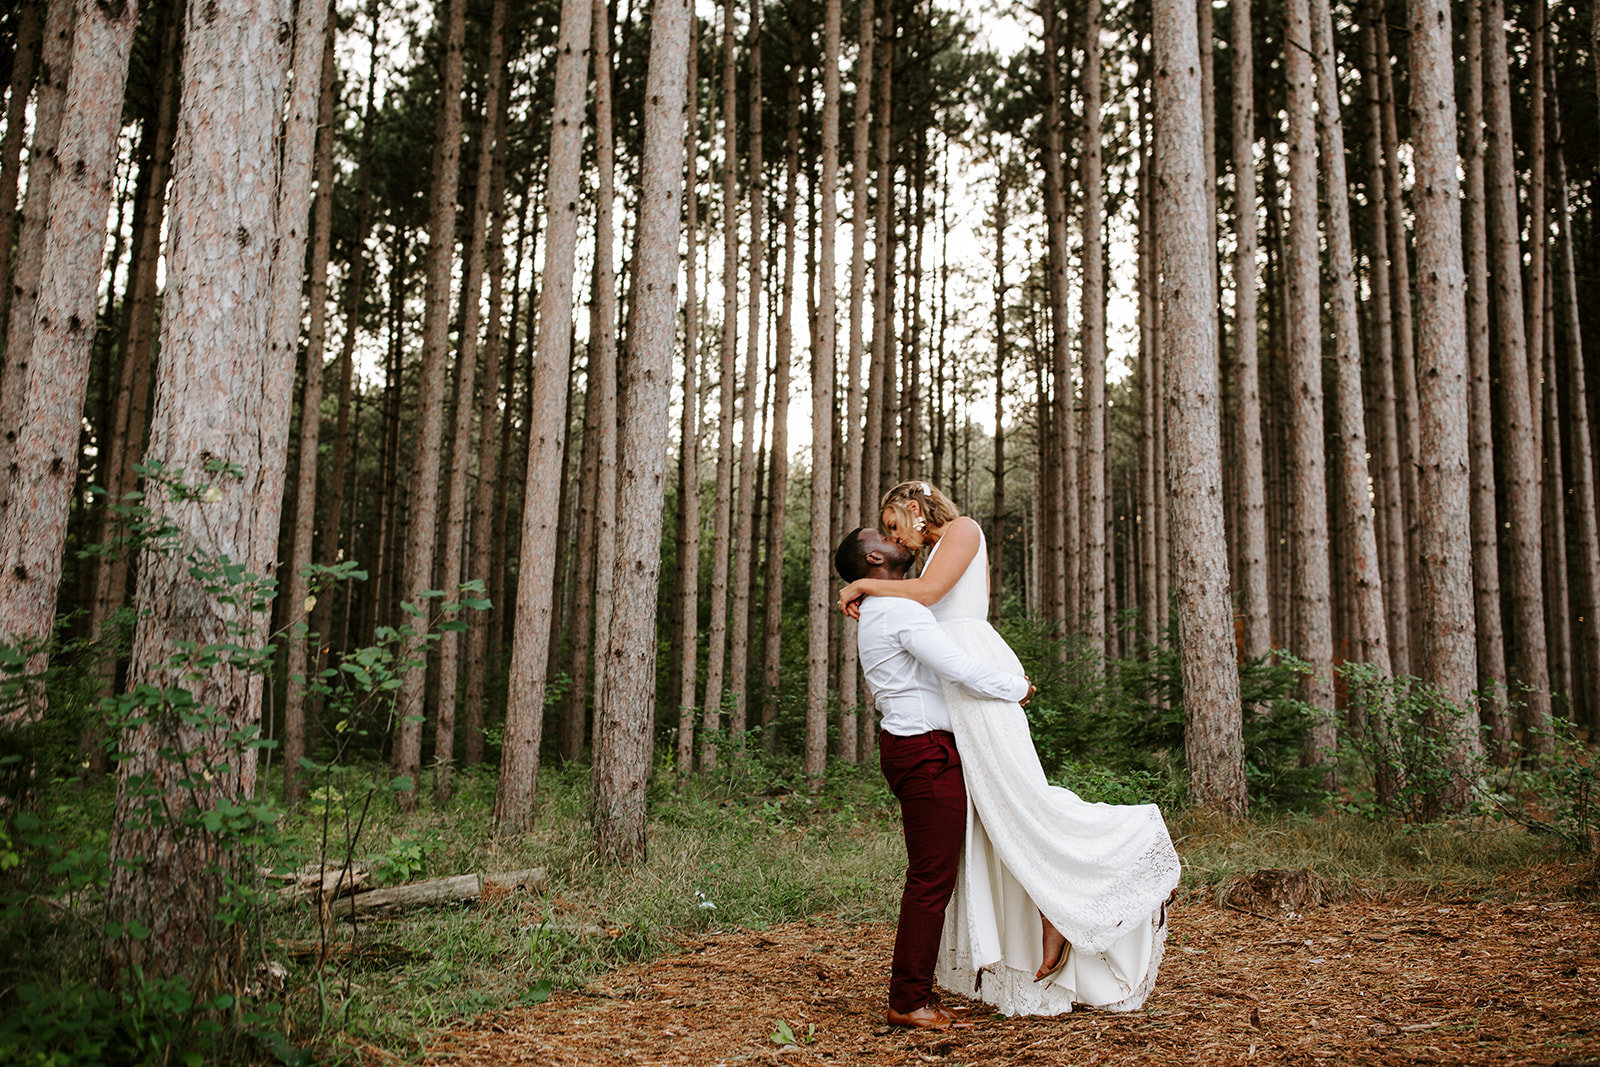 Groom lifting his bride kissing in tall pine tree at Pinewood Wedding Venue